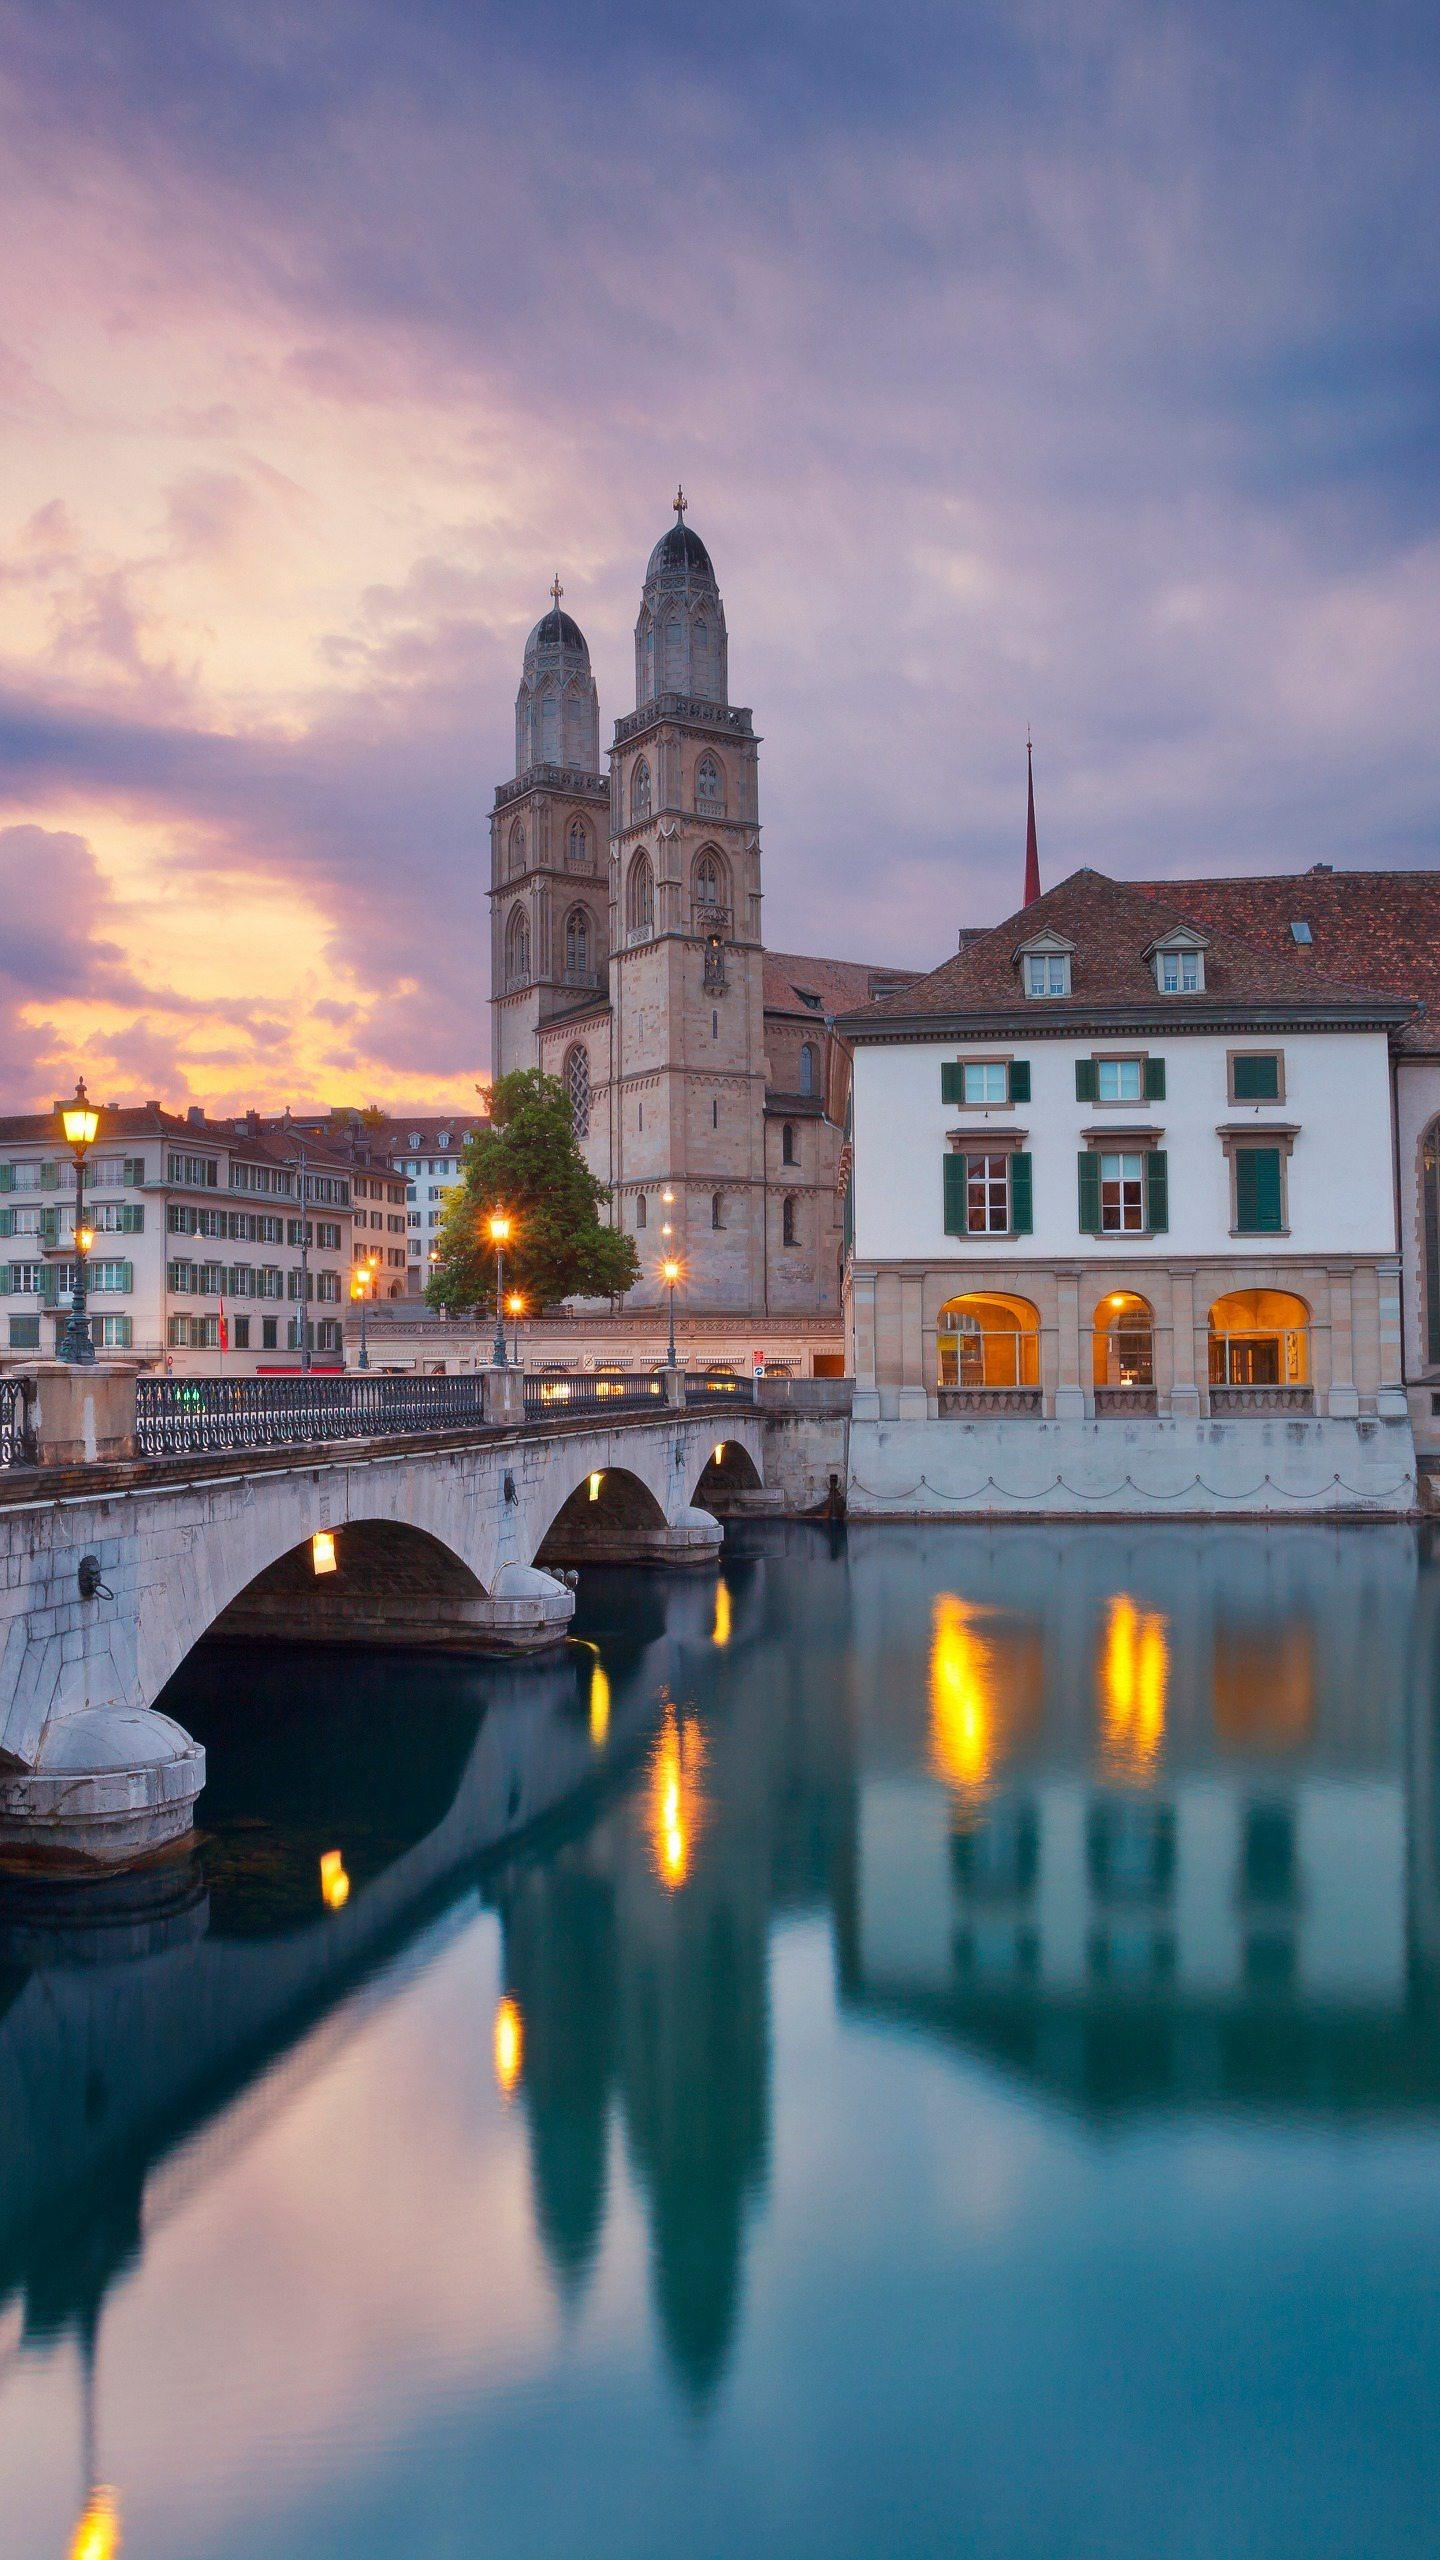 Zurich. This is Europe's financial center and is rated as the most liveable city in the world.